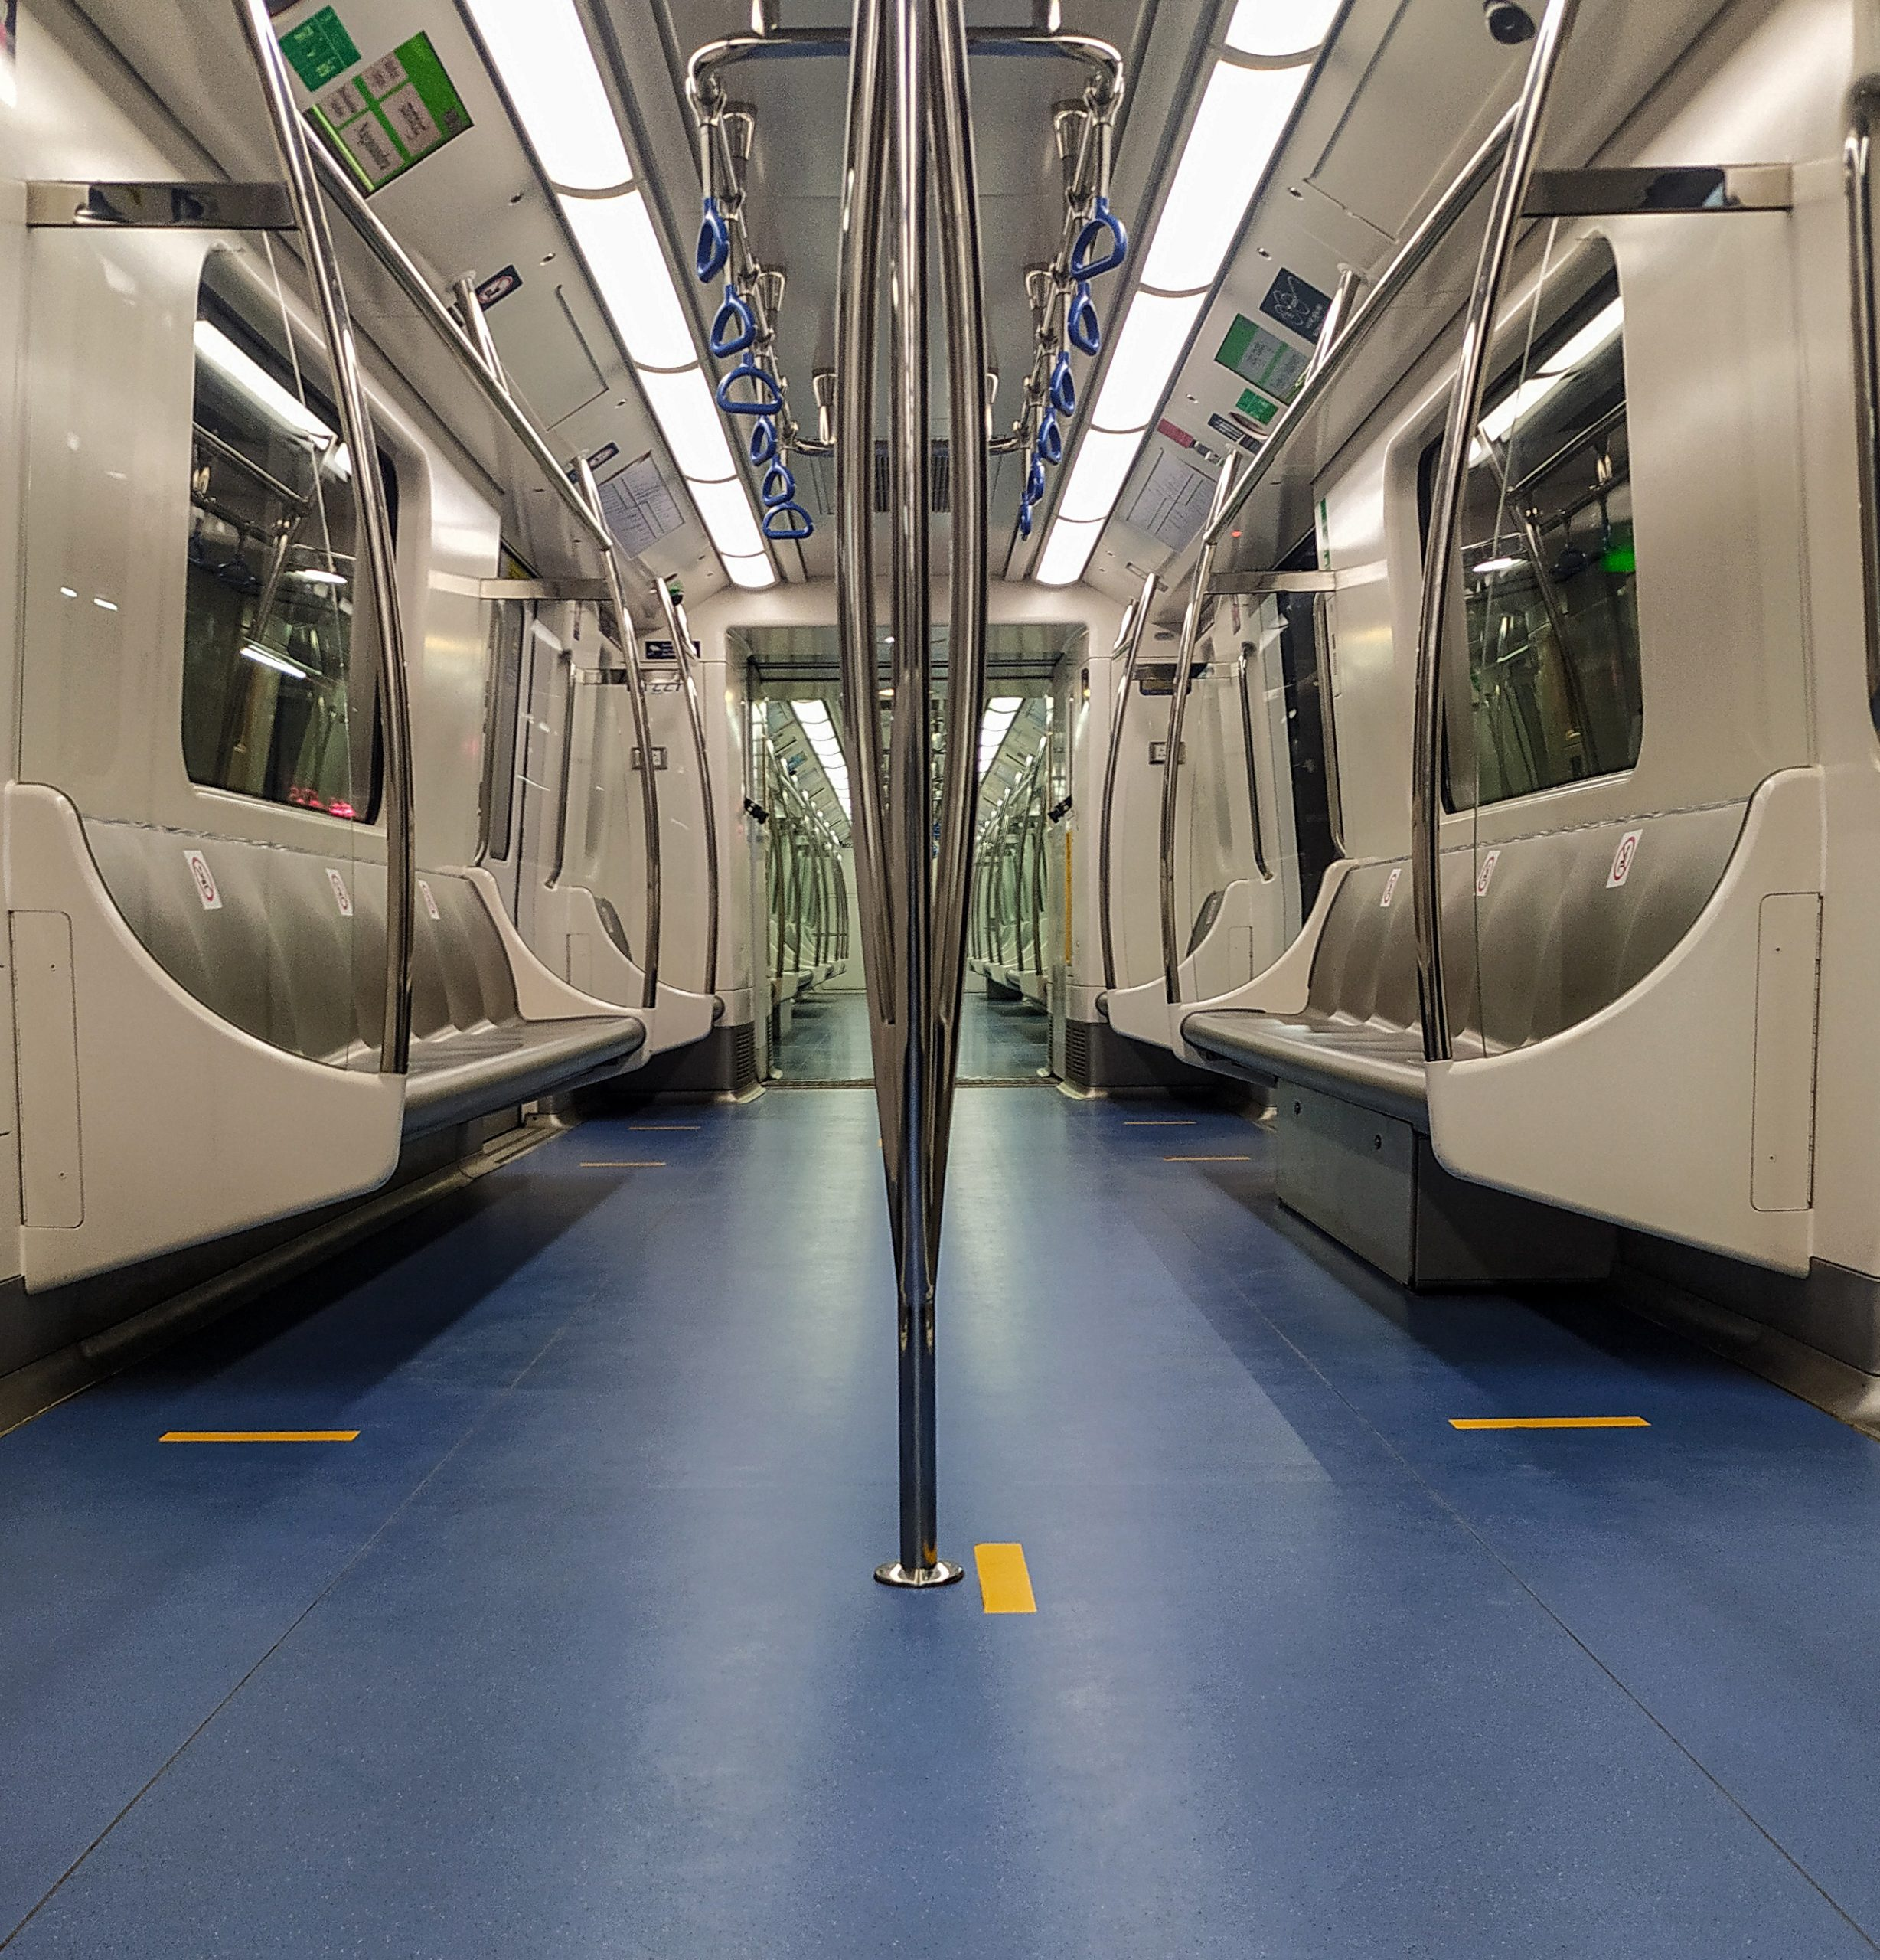 Inside view of metro train